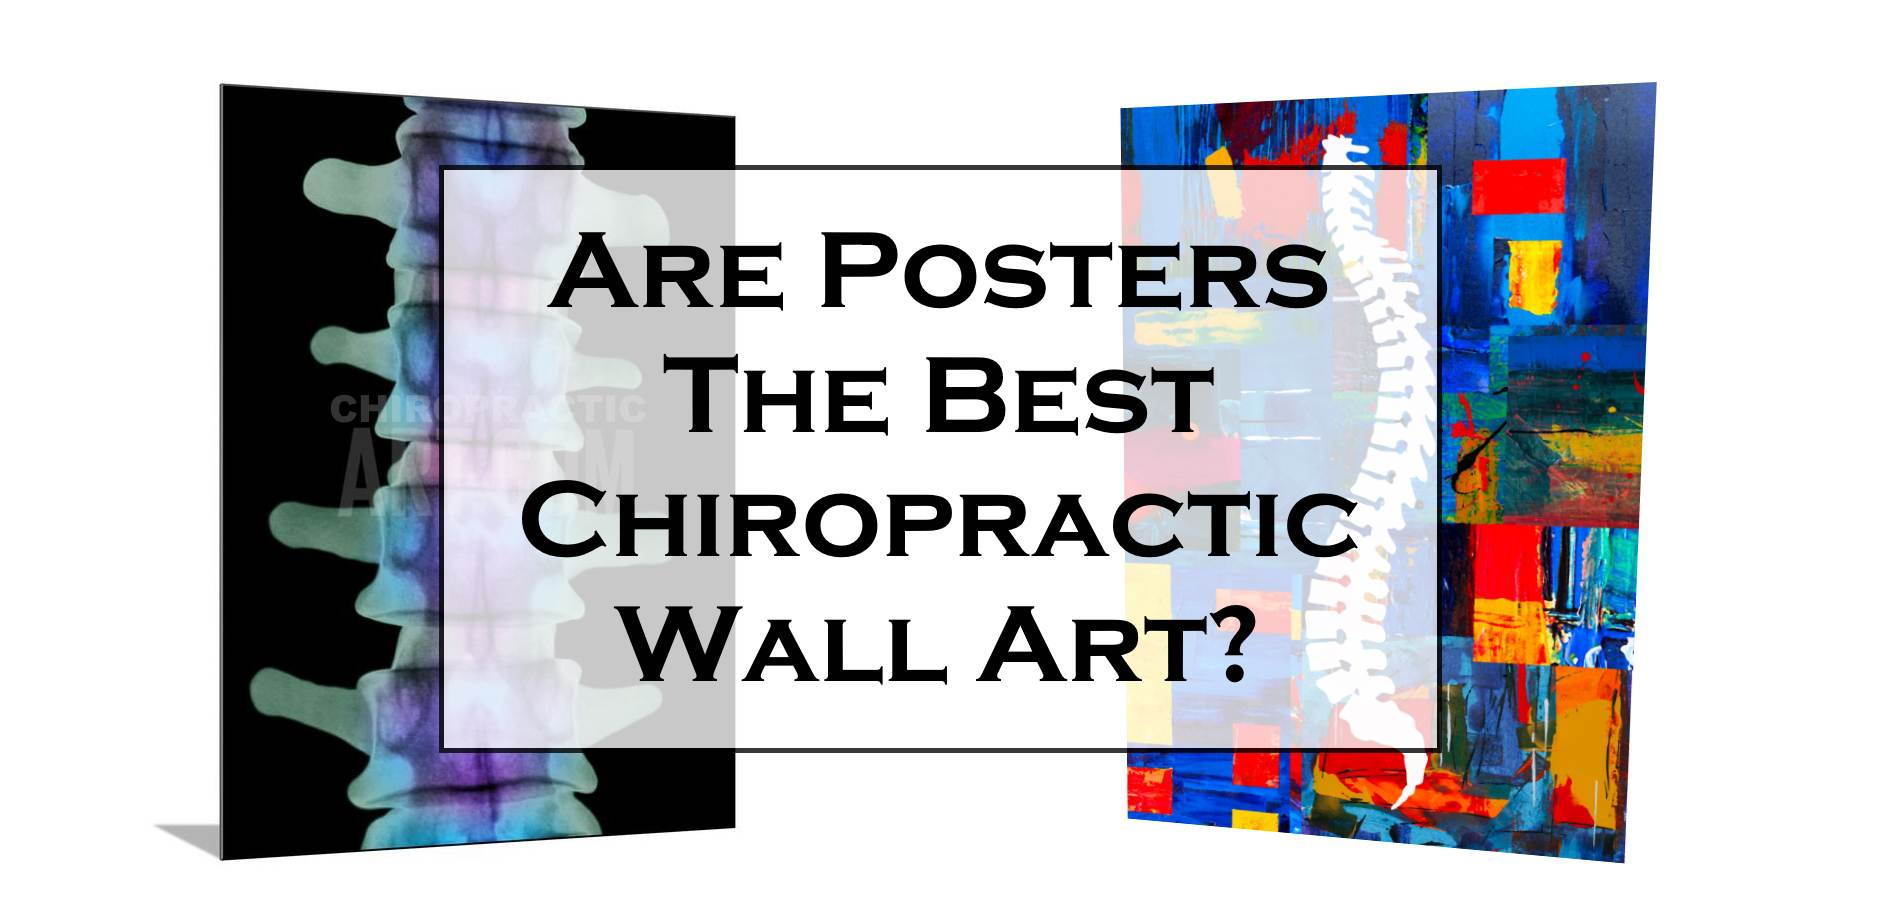 Chiropractic Posters – The Best Chiropractic Wall Art?